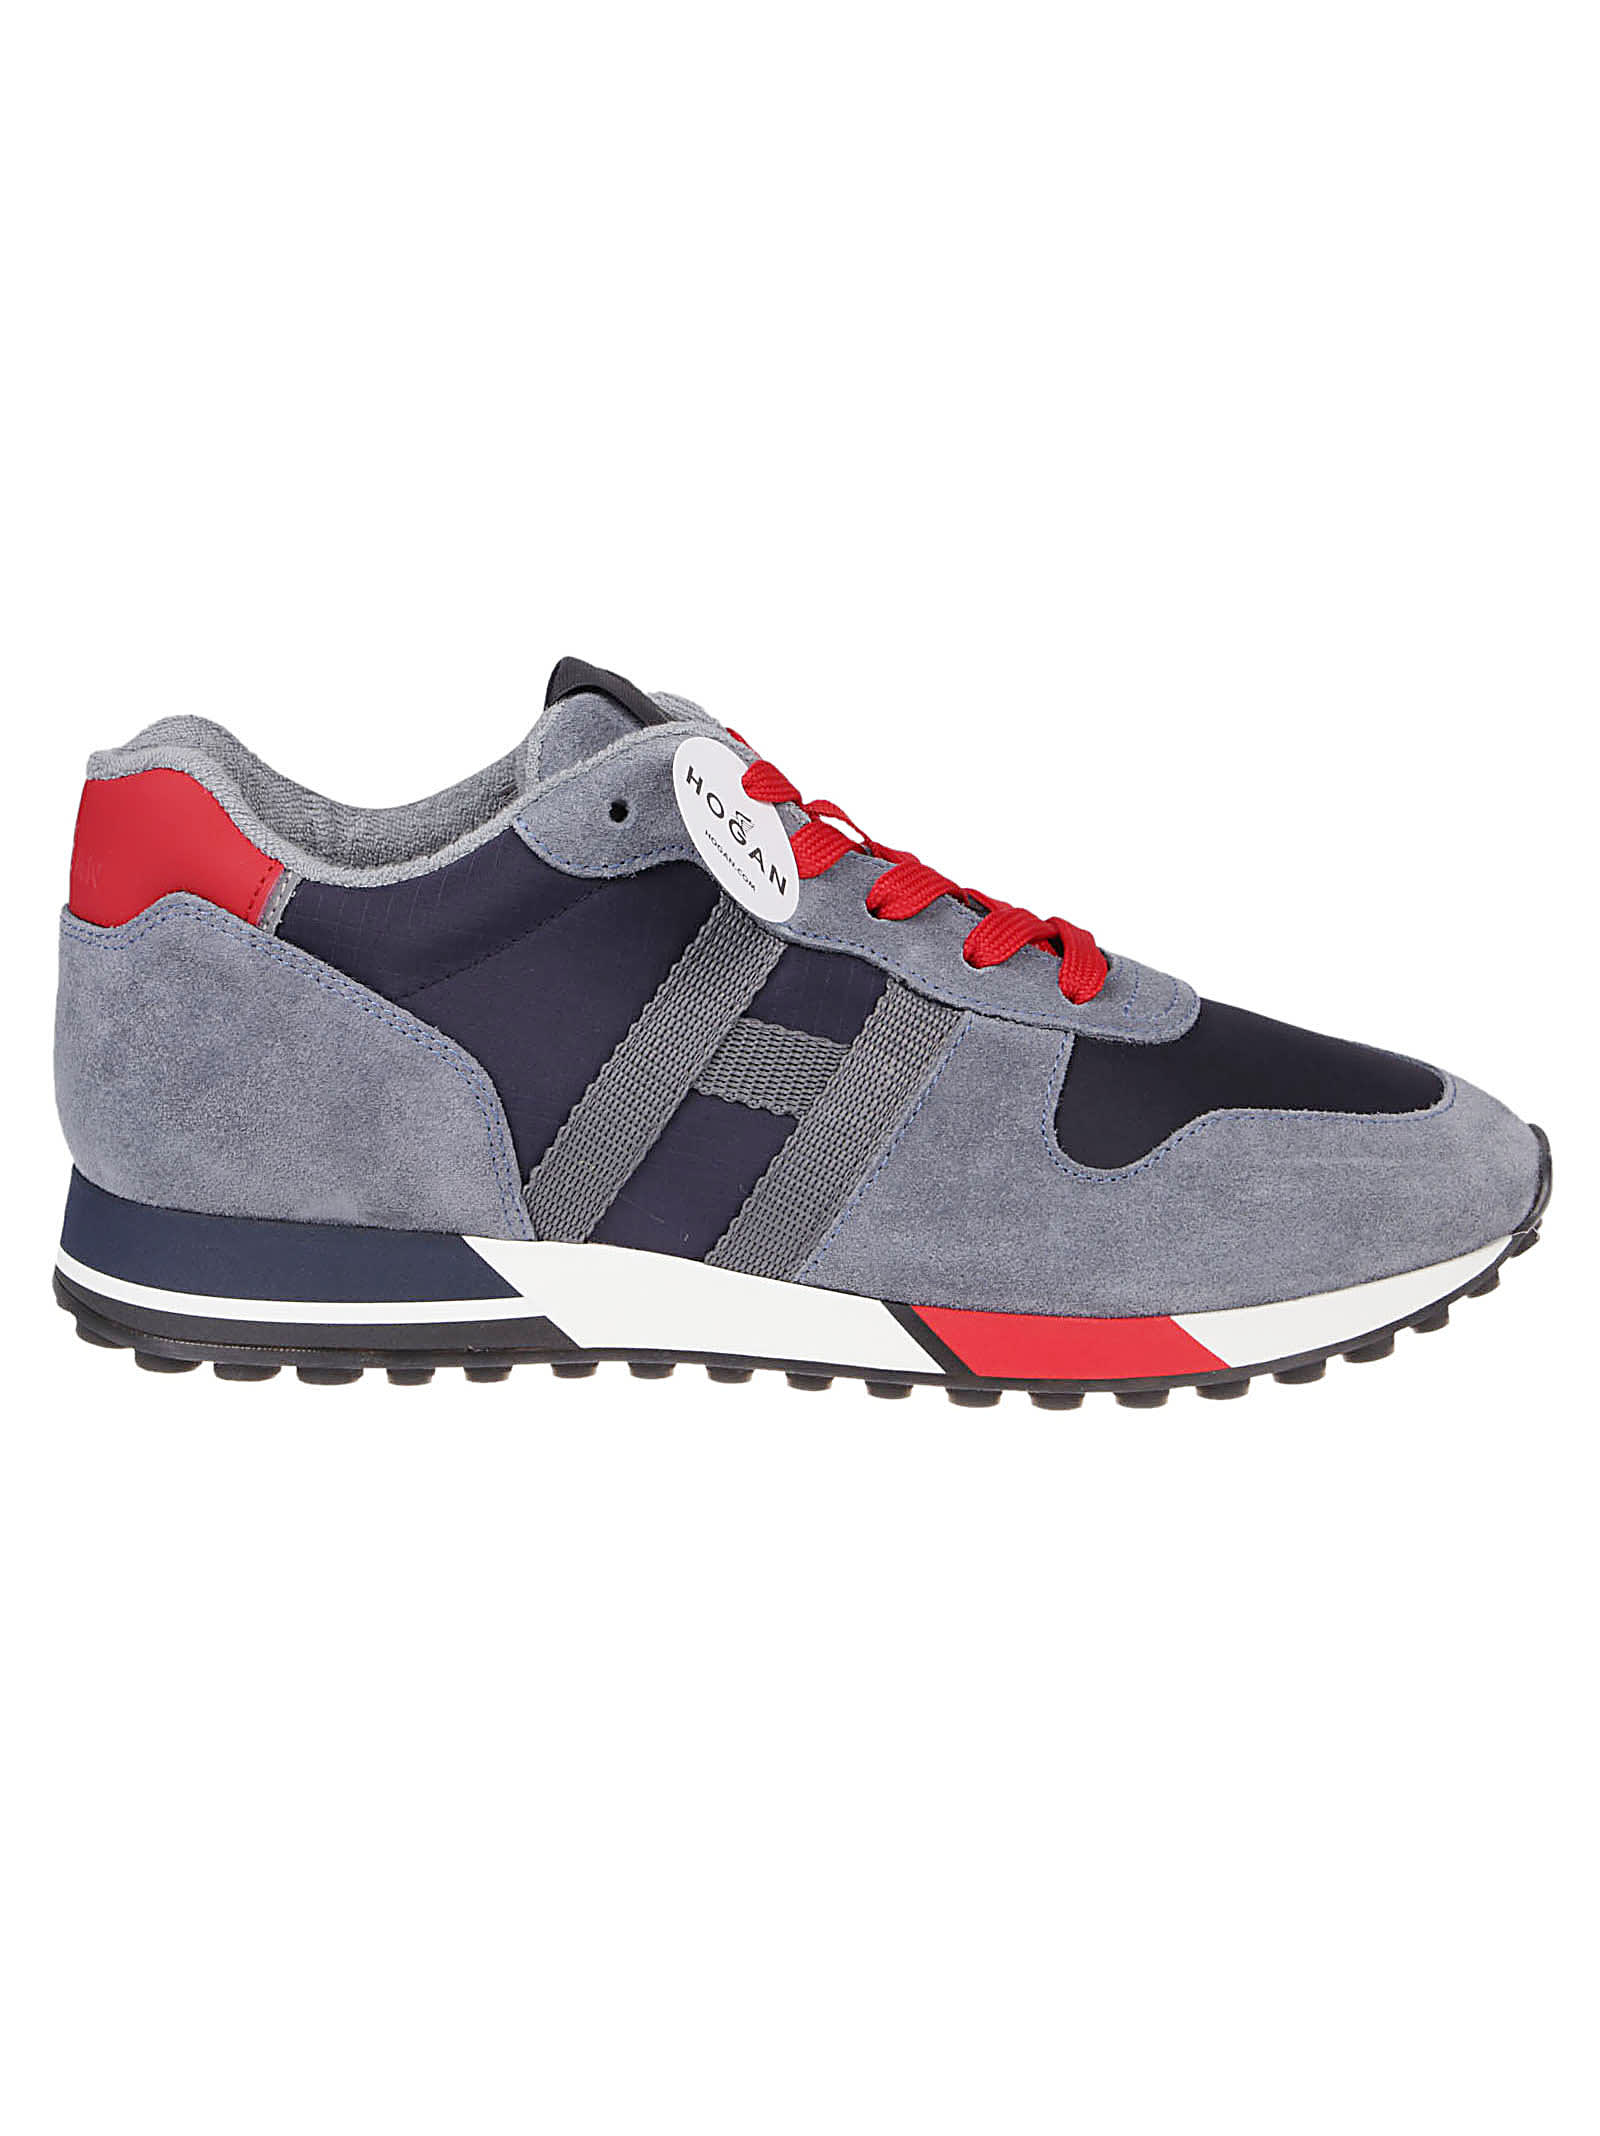 HOGAN H383 RETRO RUNNING SNEAKER